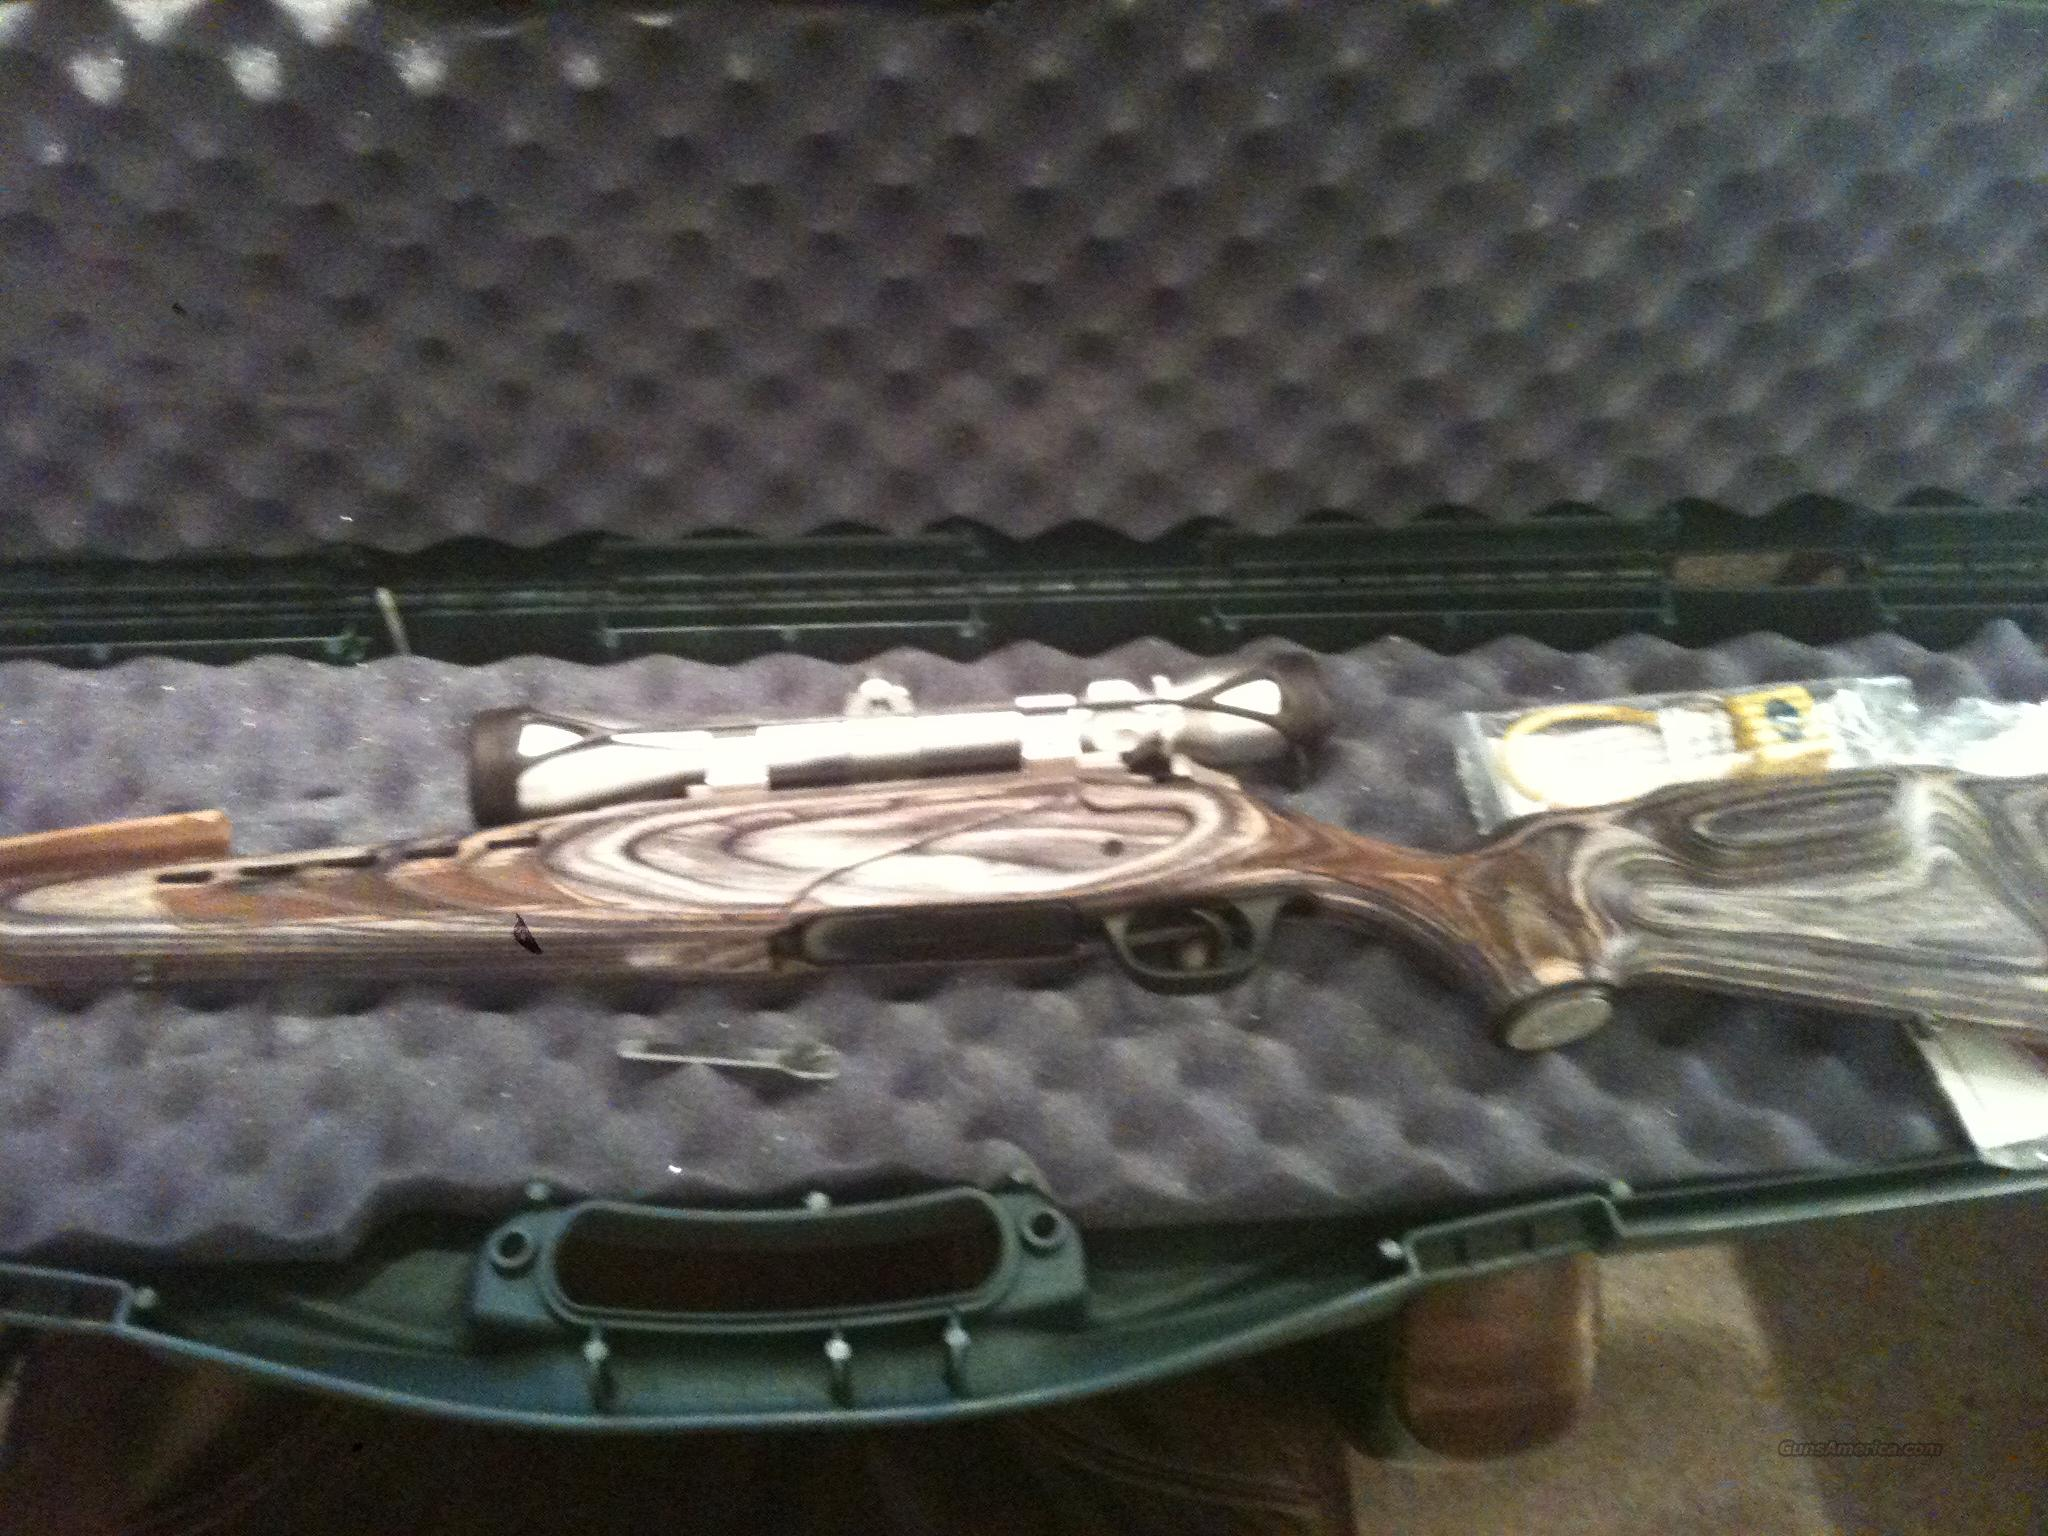 Mossberg 4x4 .300 win mag, Ducks Unlimited  Guns > Rifles > Mossberg Rifles > 4x4 > Sporting